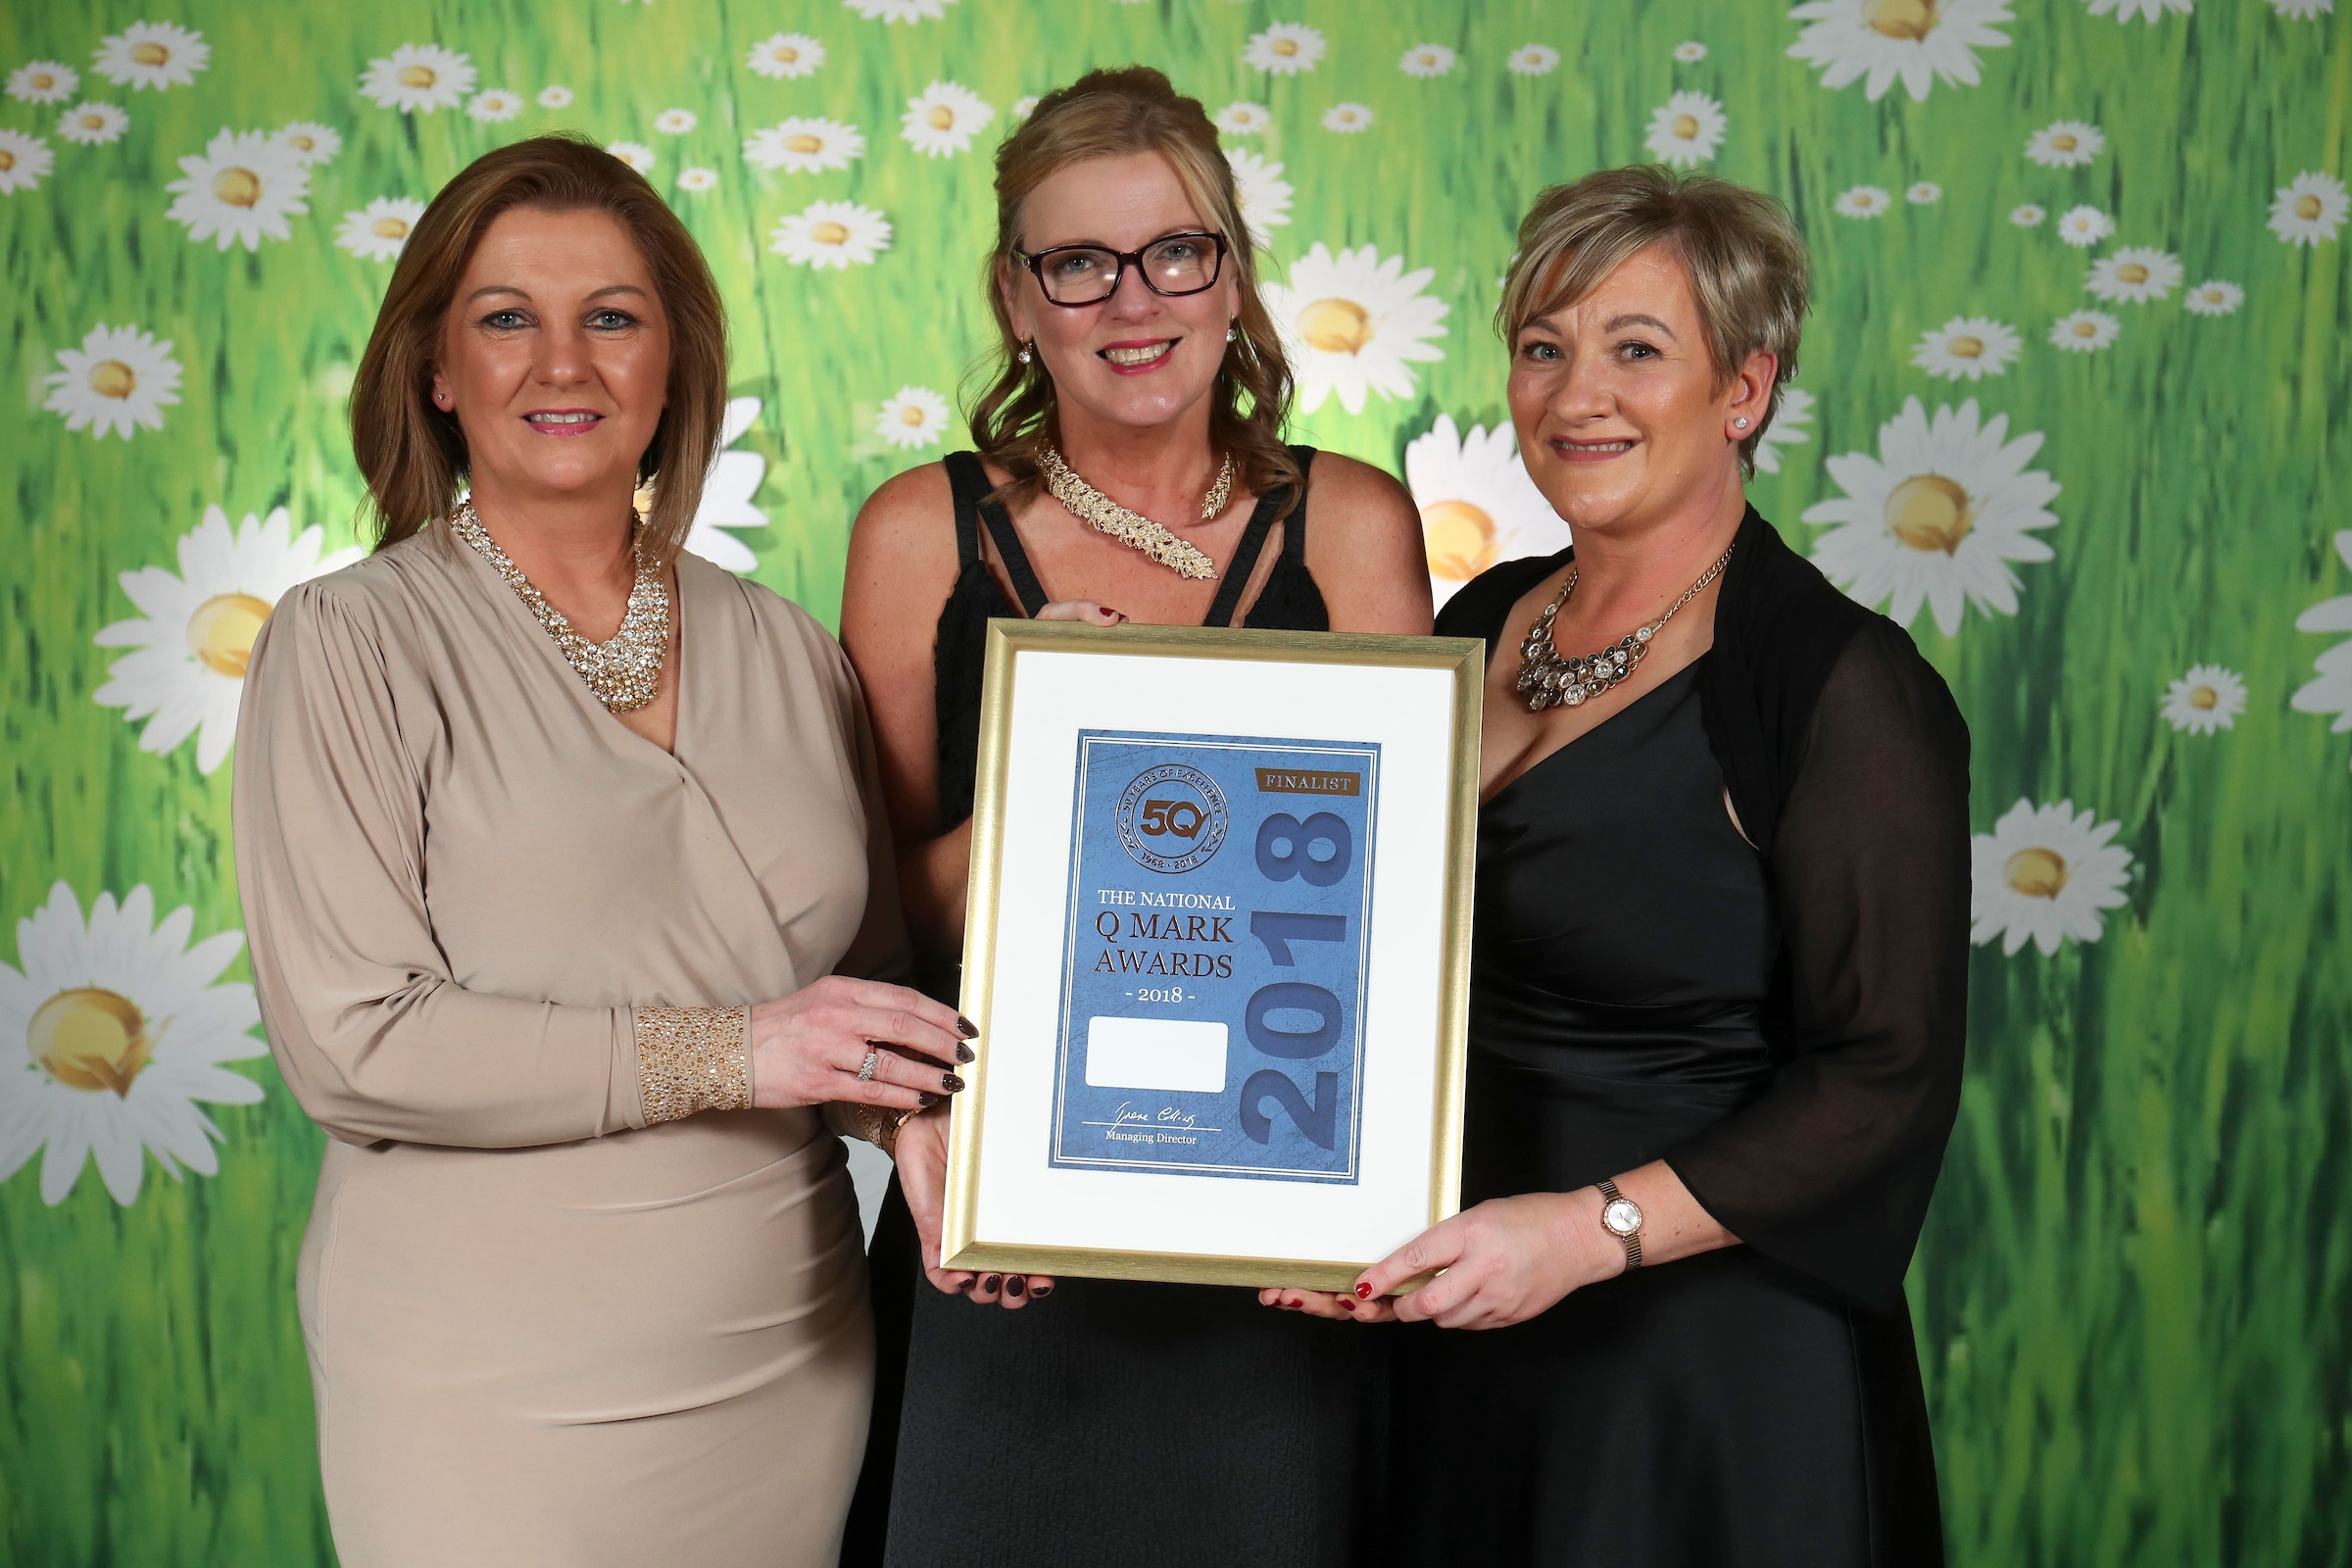 67bdd5553b6 Top honours for Kildare LESN at The National Q Mark awards Best in Class &  among the top 6% of businesses Nationally - Co. Kildare LES